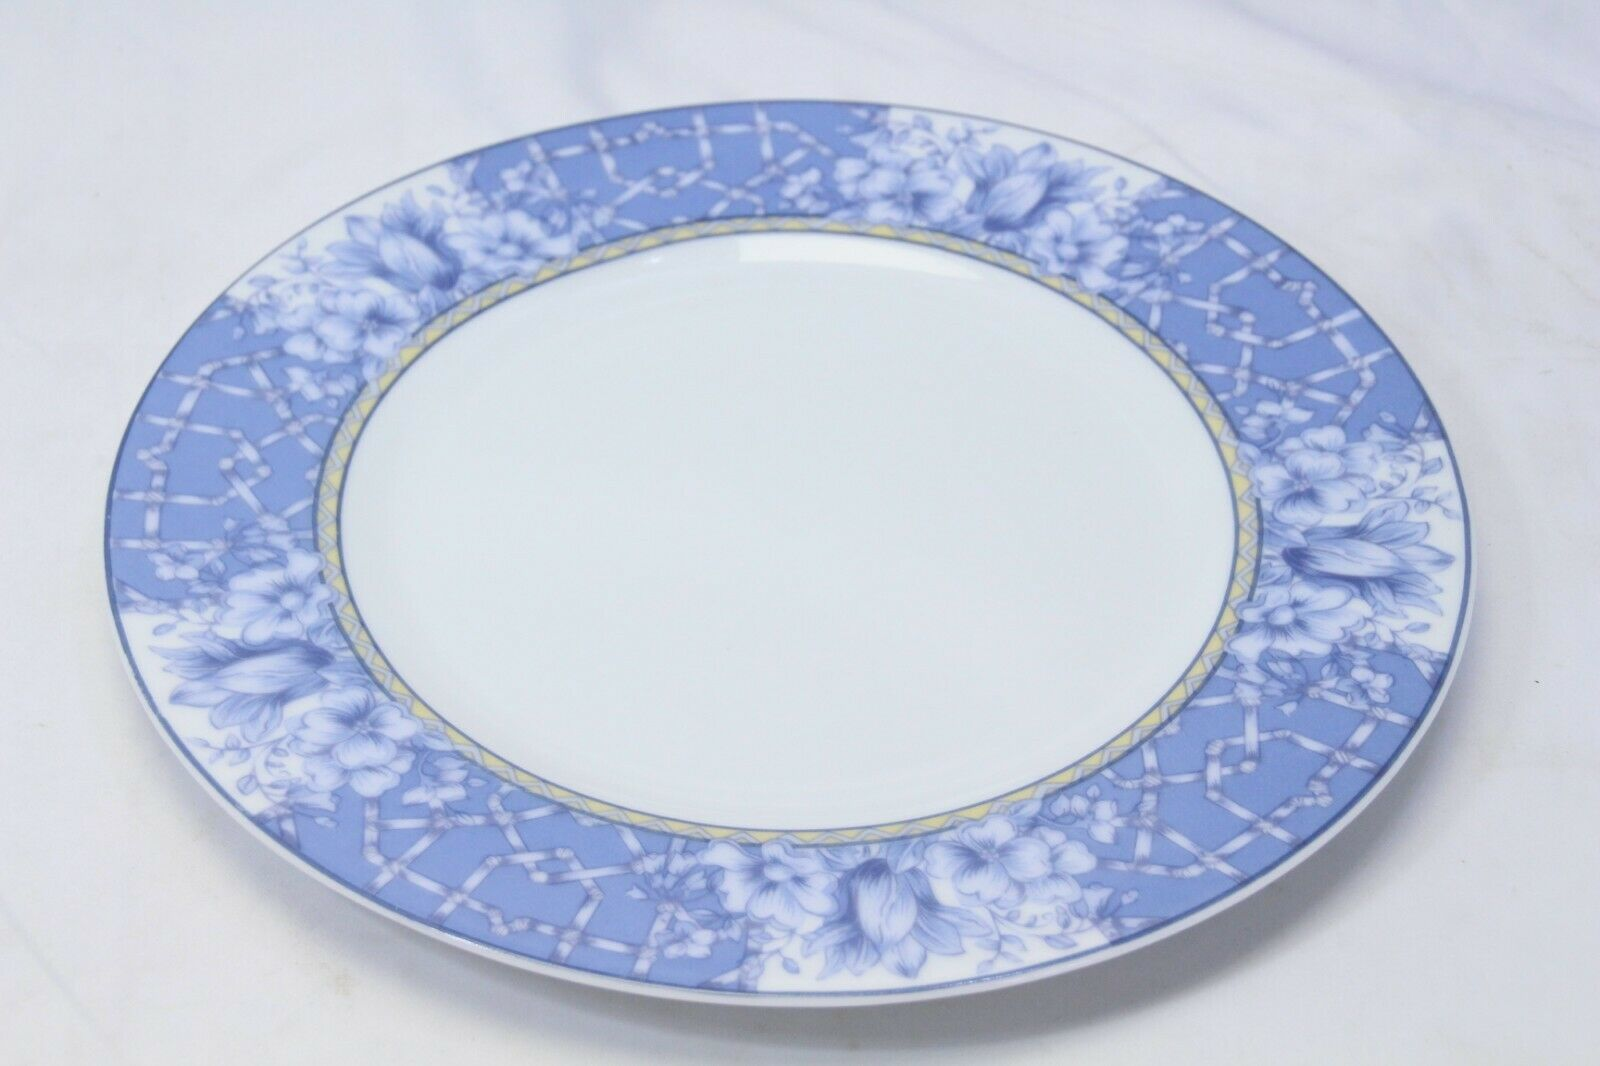 """Coventry Palace Garden Dinner Plates 10.75"""" Lot of 7 image 4"""